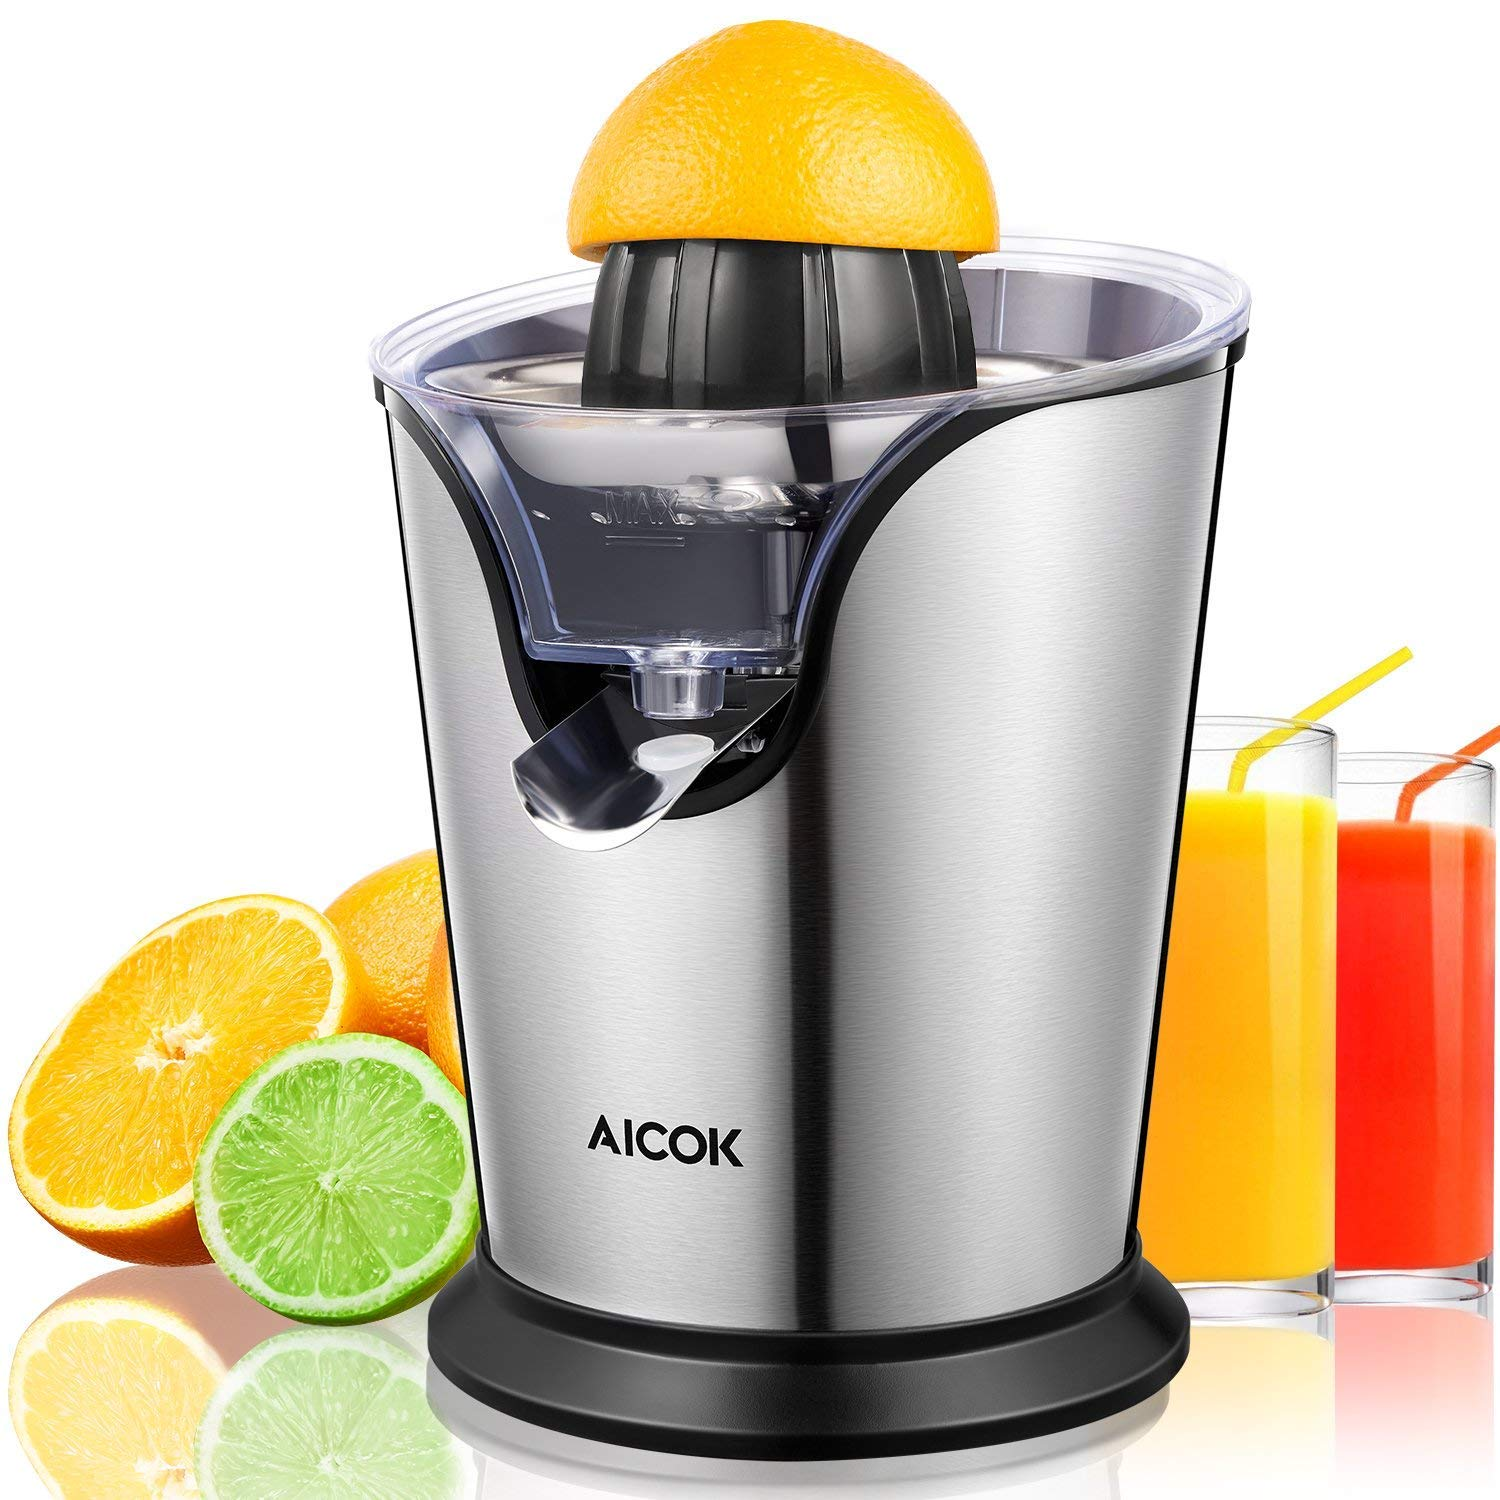 Aicok Electric Citrus Juicer Stainless Steel Orange Juicer